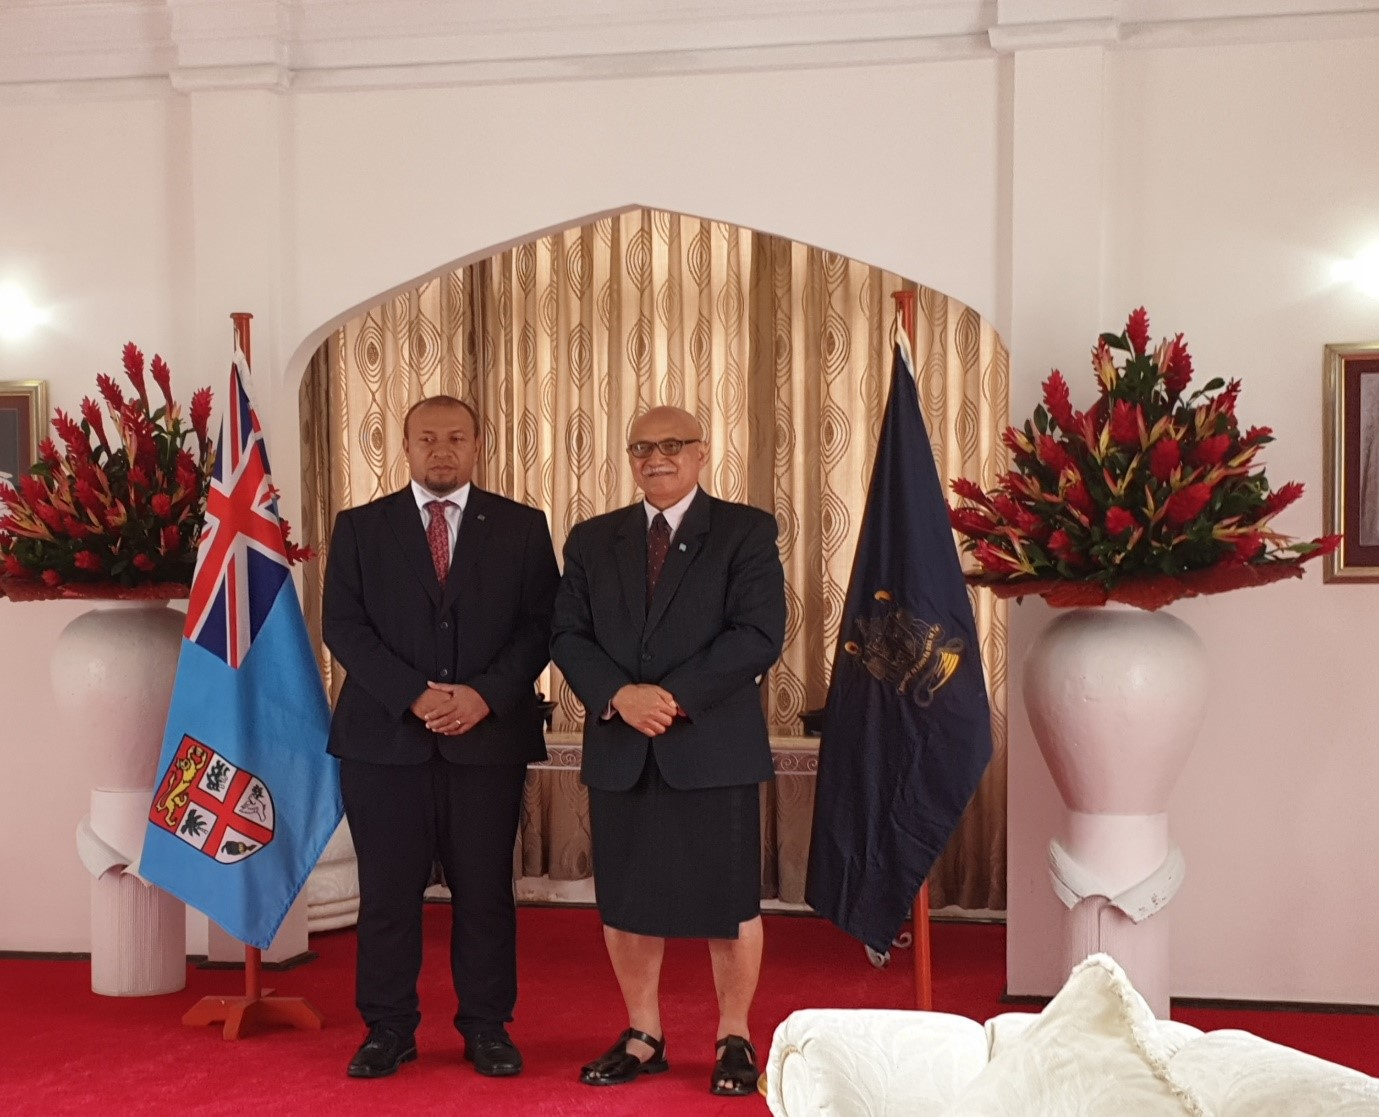 H.E William Soaki, Solomon Islands High Commissioner to Fiji Presents Credential to H.E Major-General (Retired) Jioji Konrote, President of Fiji